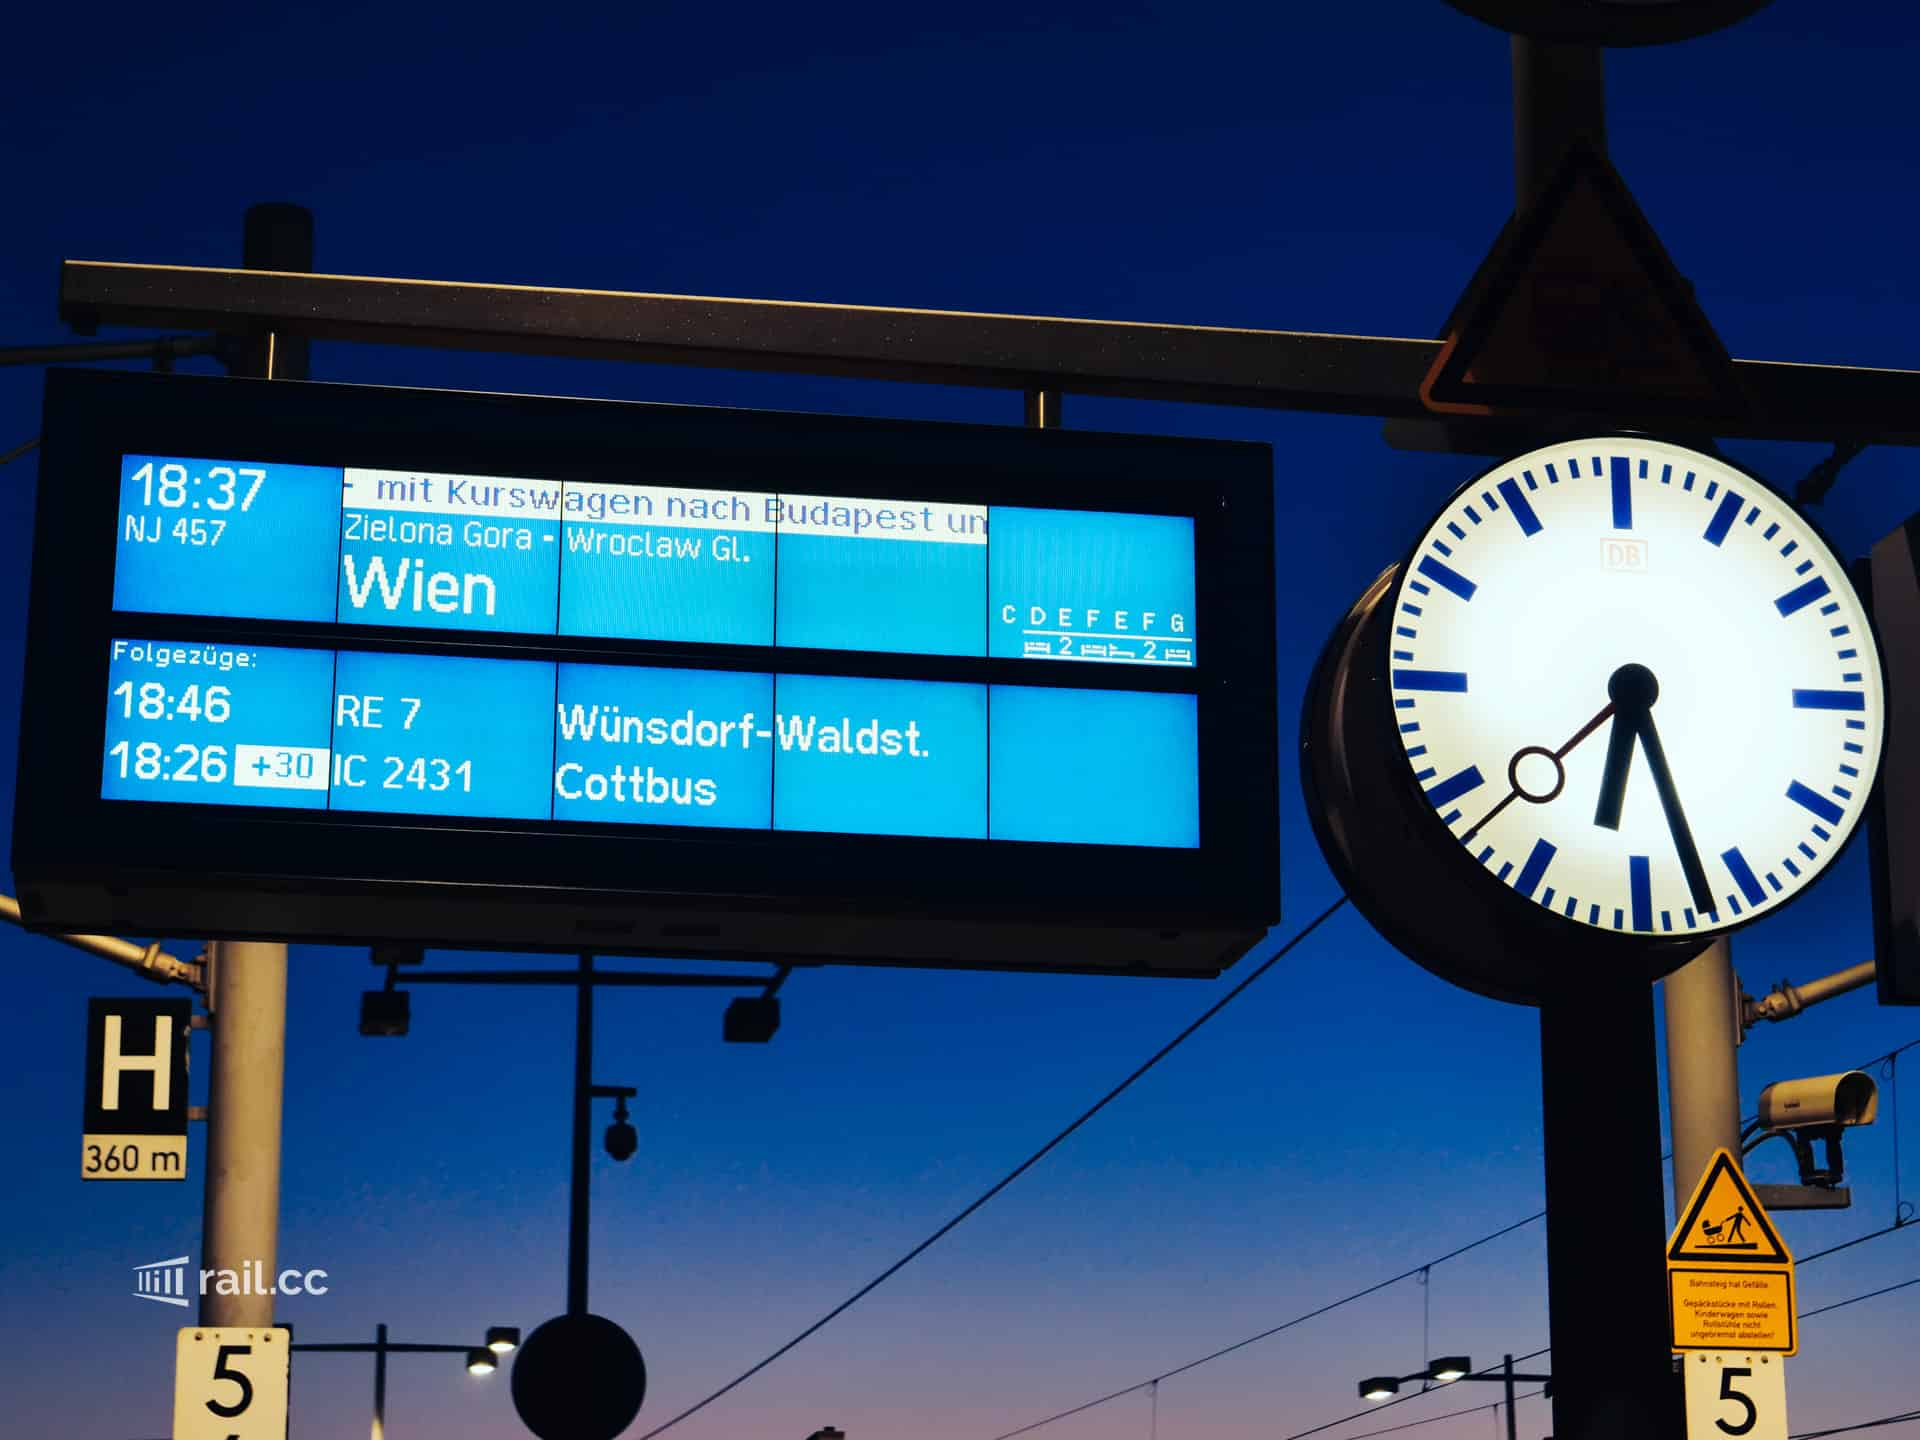 At 18:37 the night train departs for Vienna